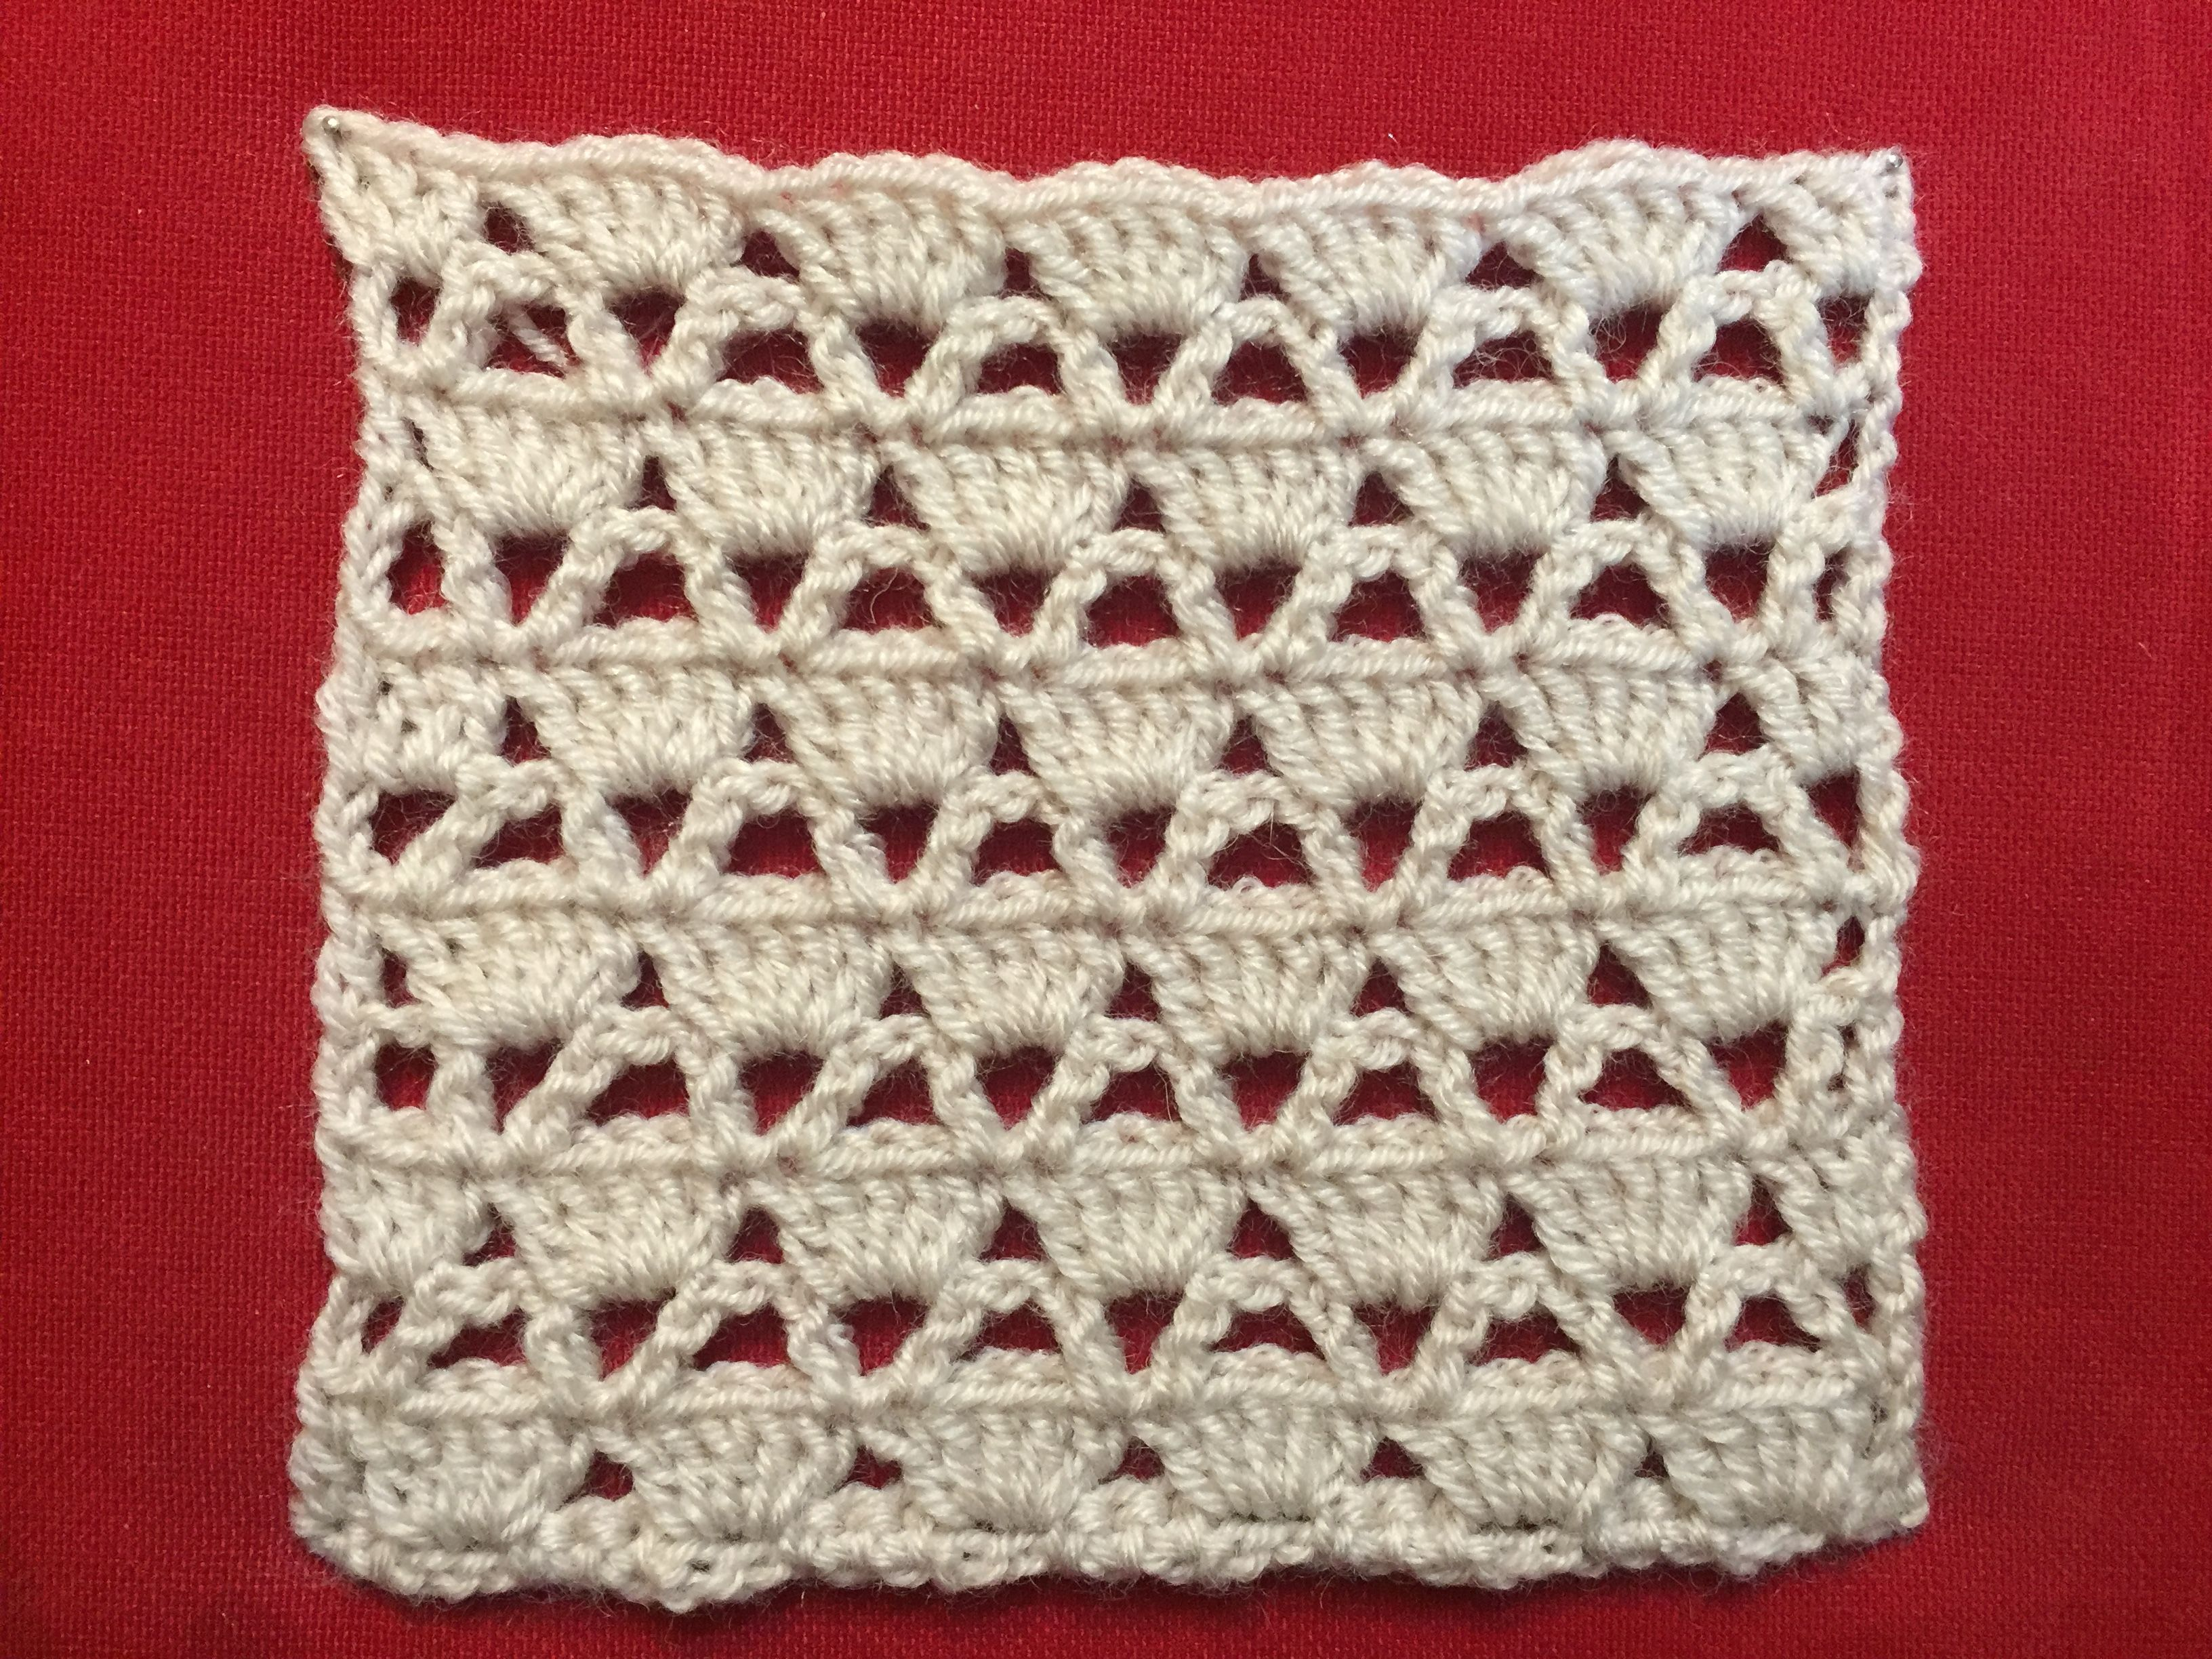 Crochet pattern | ceyiz | Pinterest | Puntadas, Ganchillo de la ...